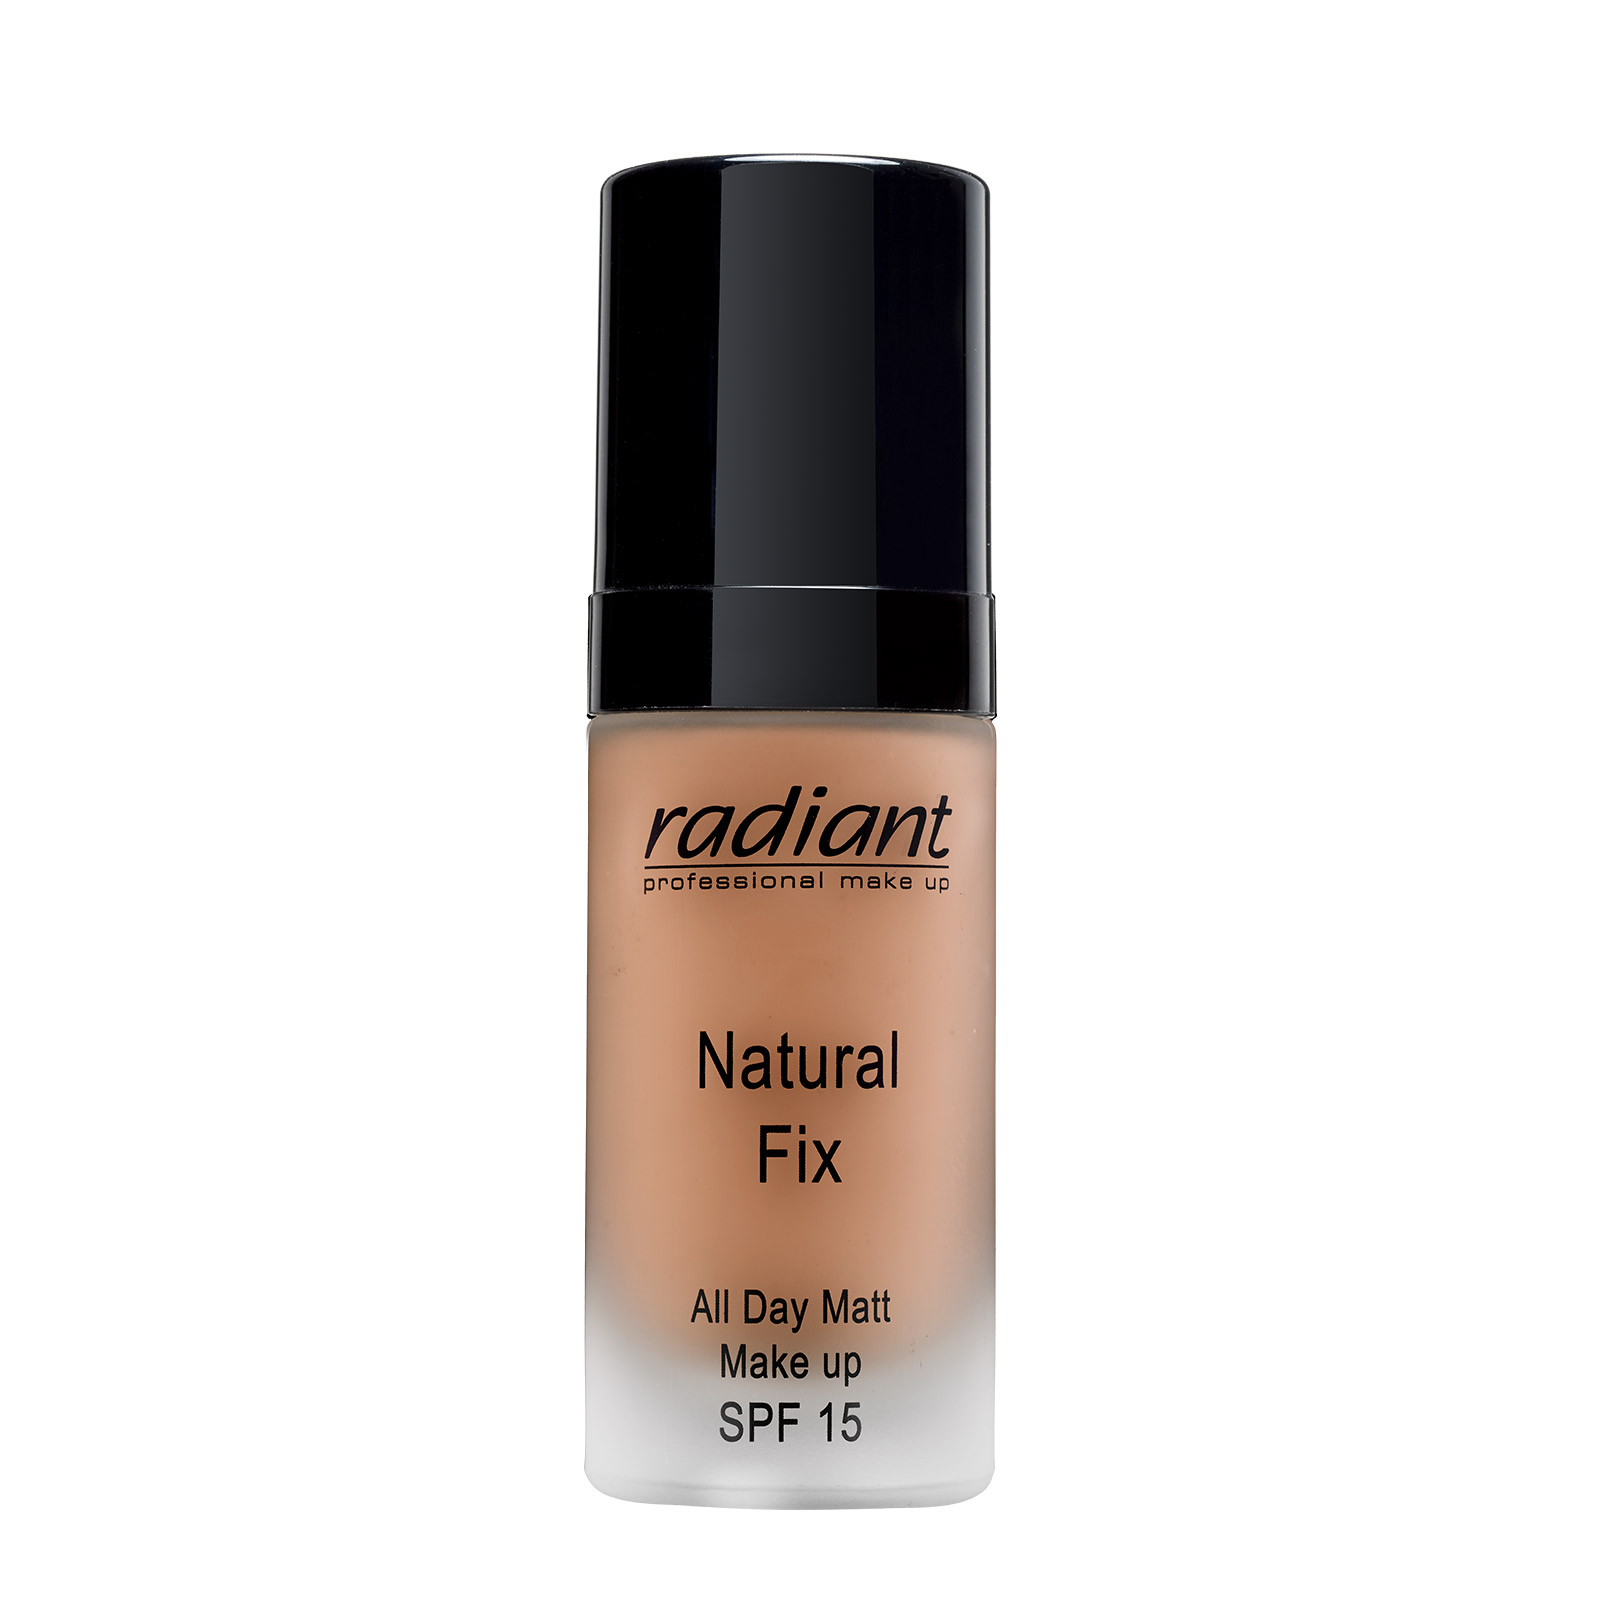 NATURAL FIX ALL DAY MATT MAKE UP SPF 15 (09 Toffee)